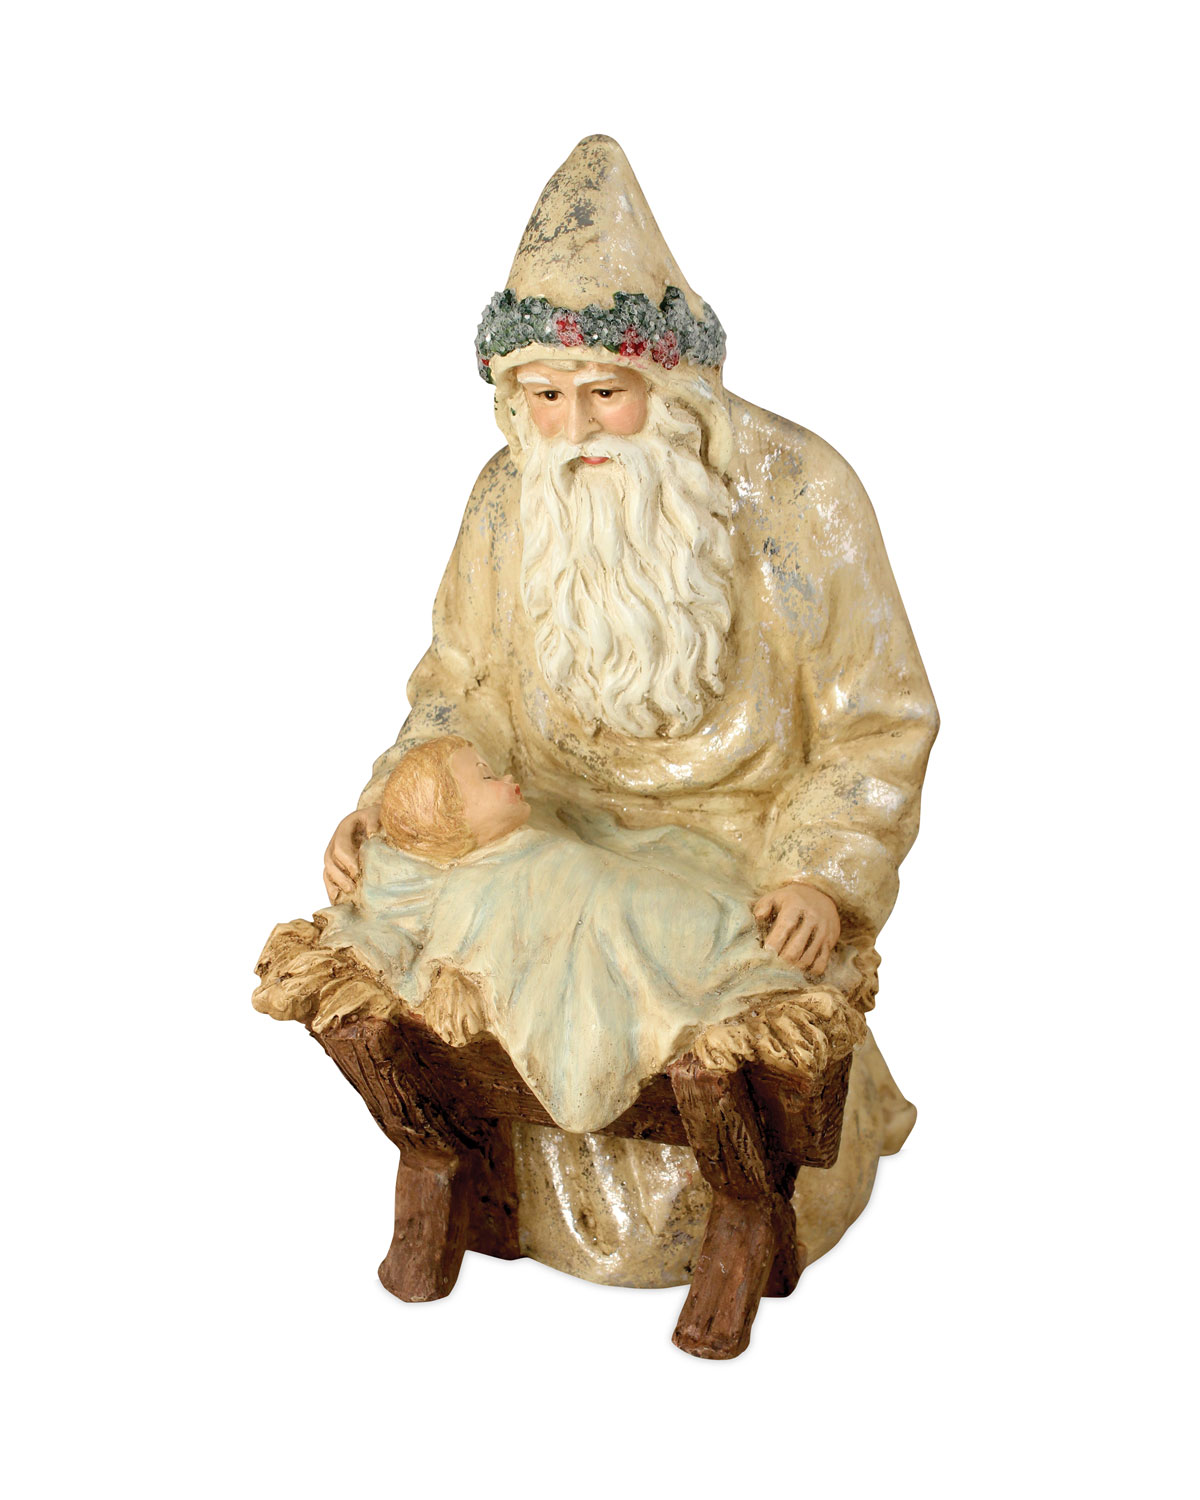 Father Christmas at the Manger Christmas Decor Statue